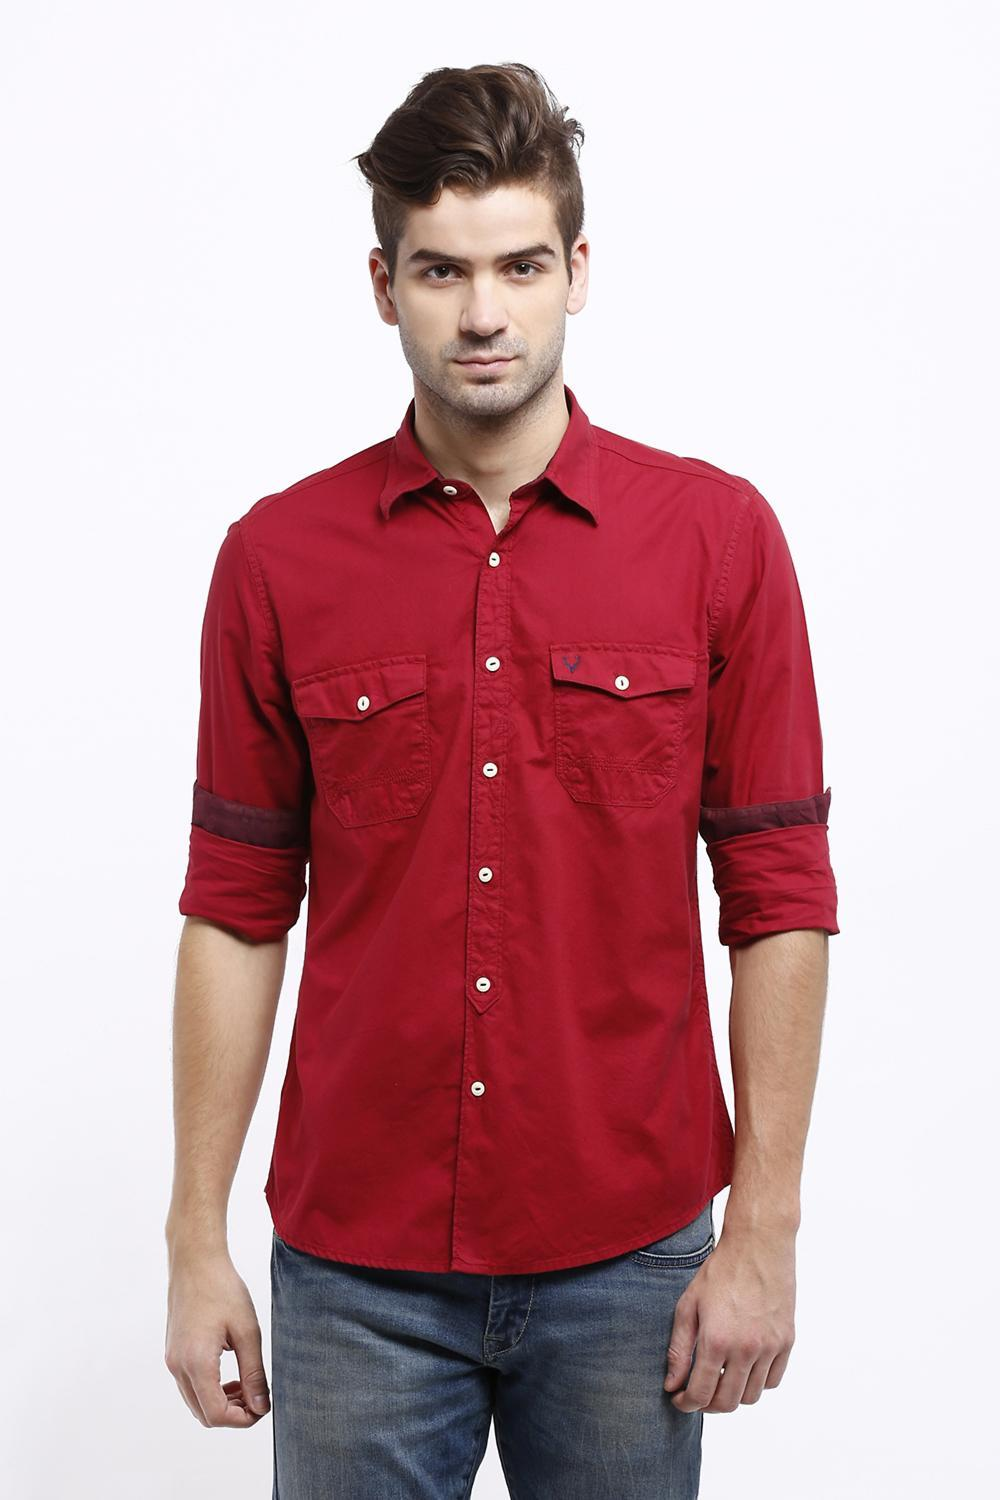 Solly Jeans Co Shirts Allen Solly Red Shirt For Men At Allensolly Com